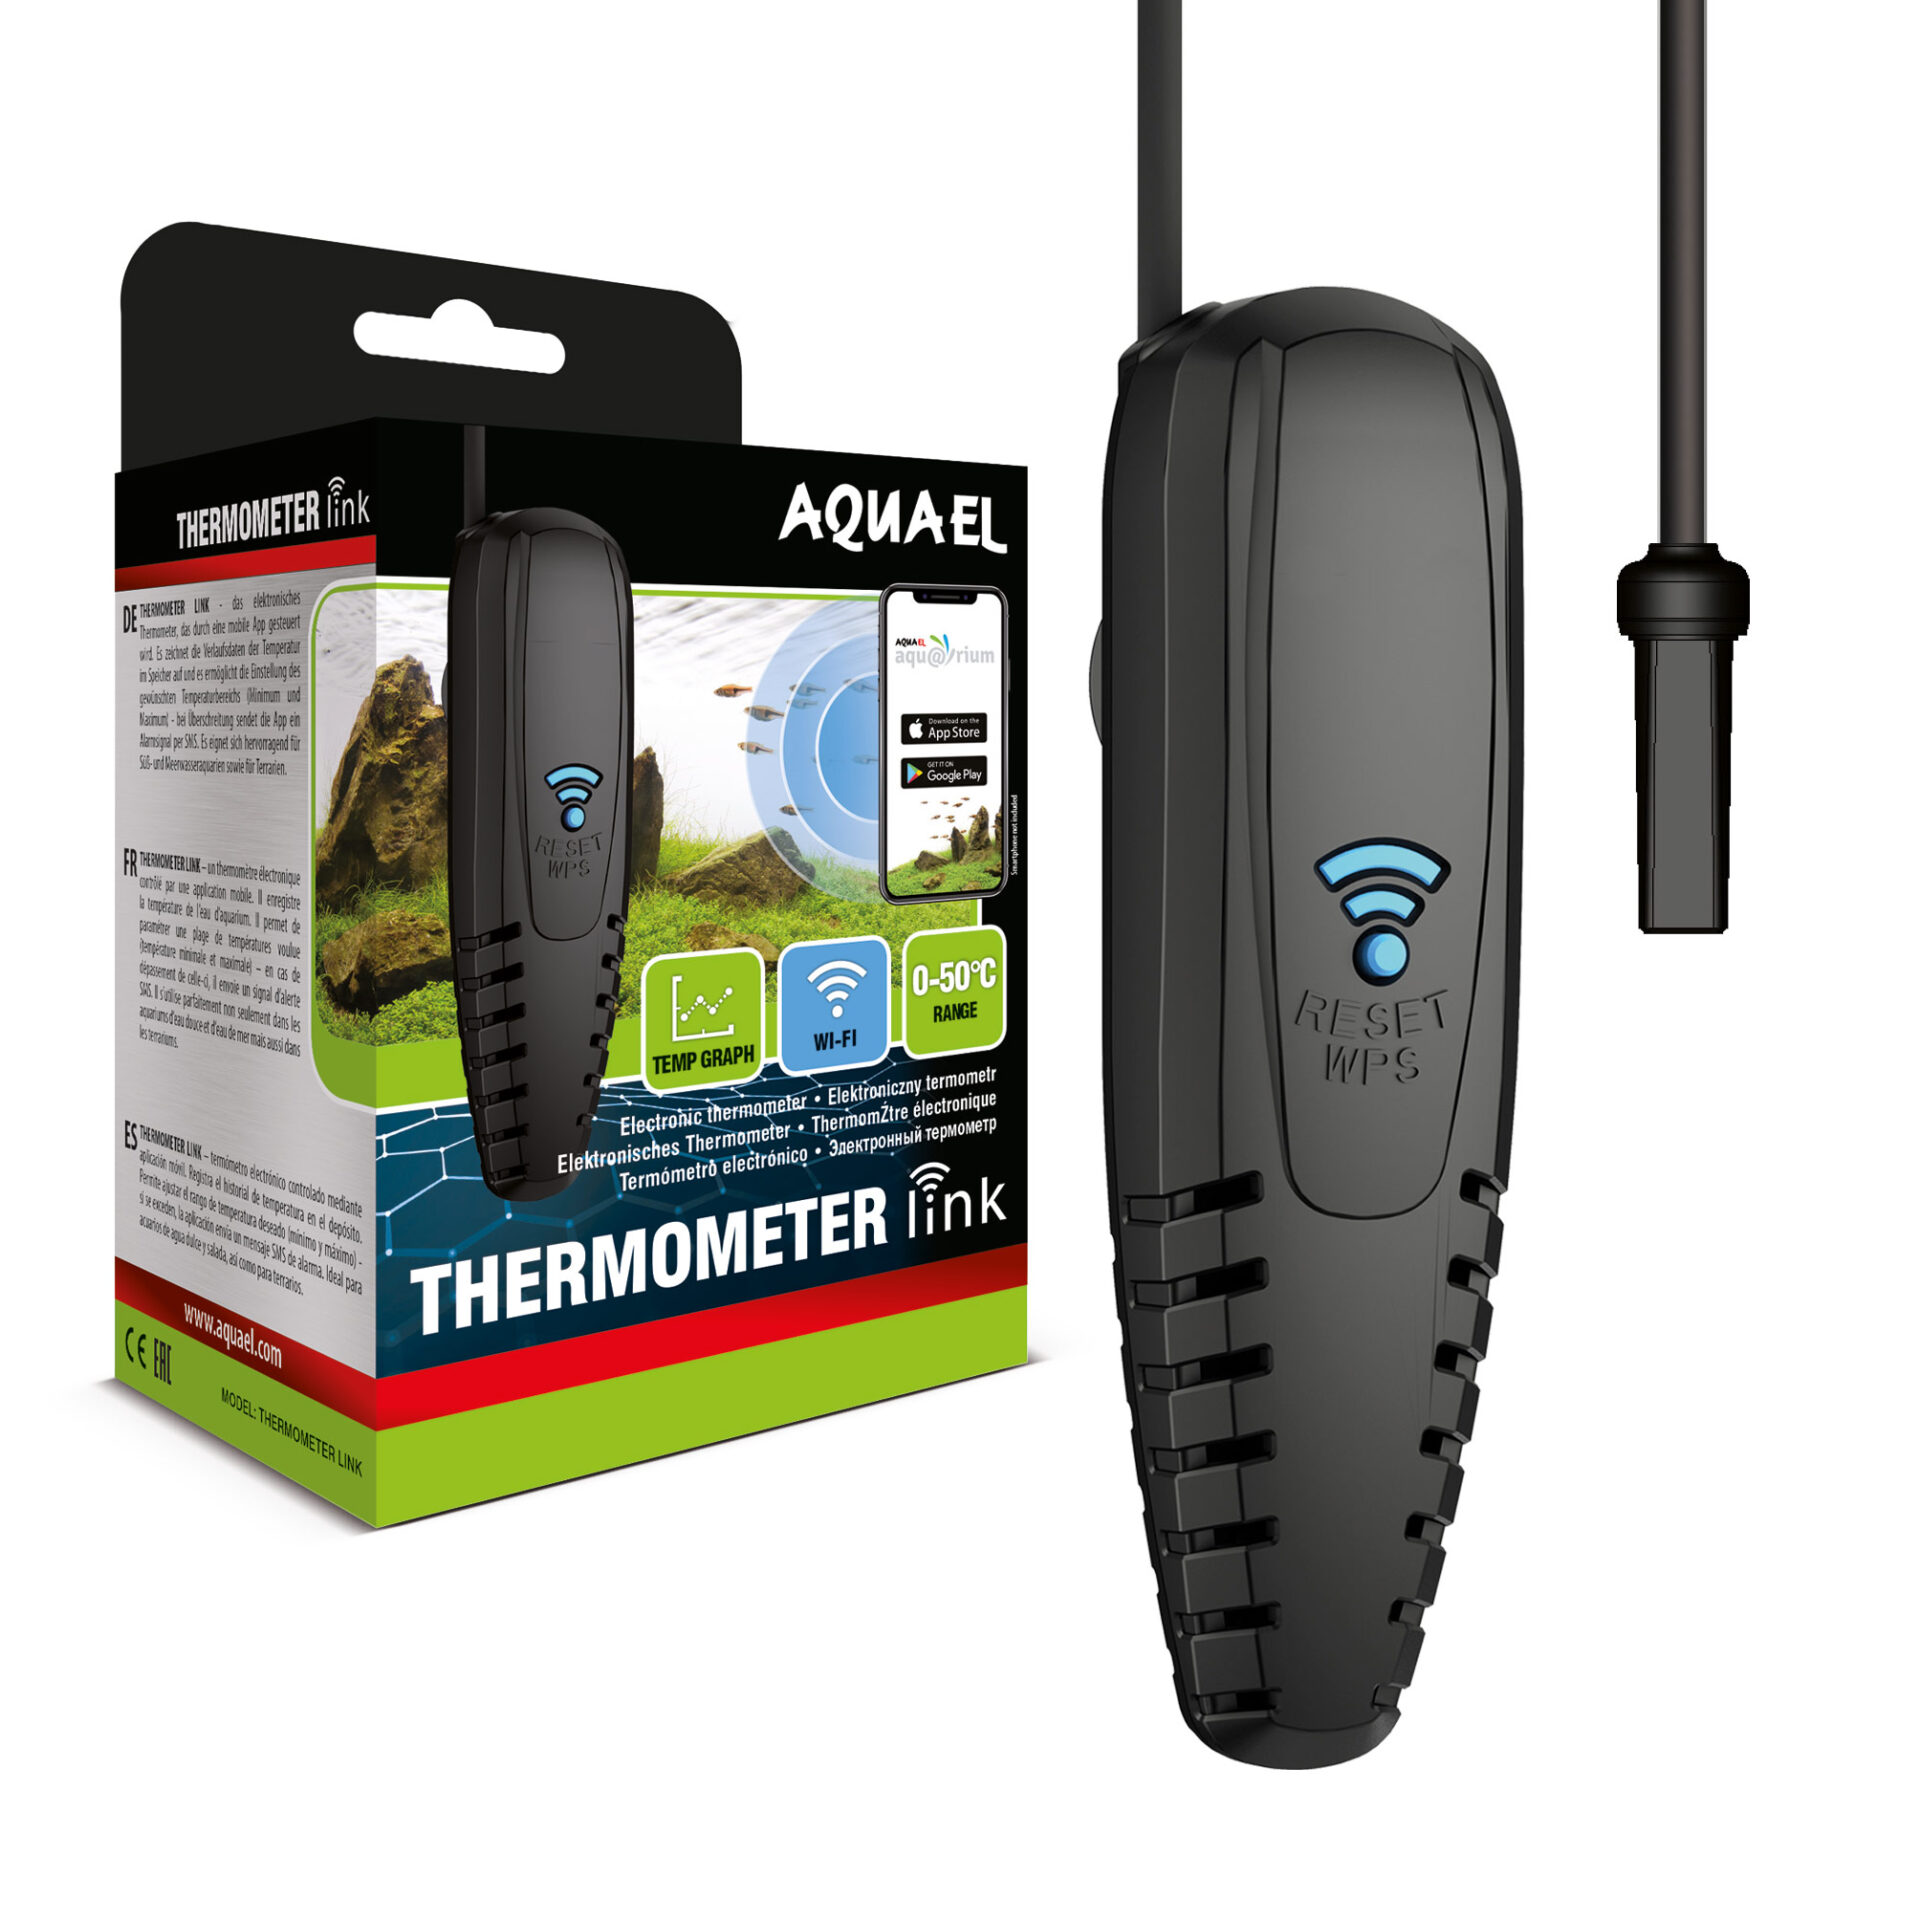 122583_thermometer_link_productpackage_336